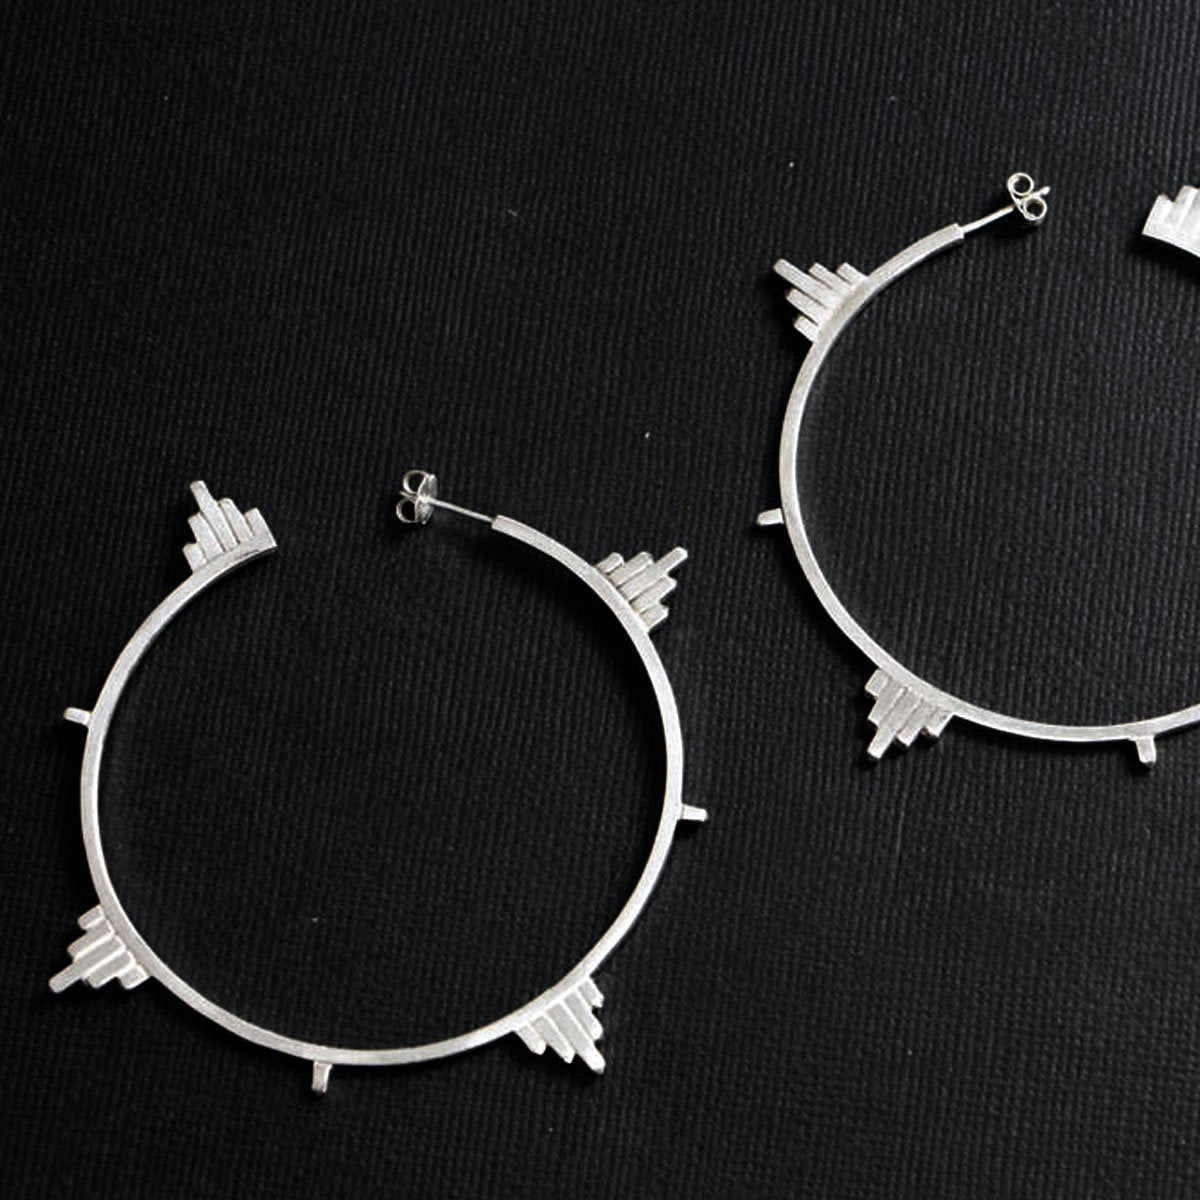 Big Celestial Hoop Architectural Earrings - Inchoo Bijoux